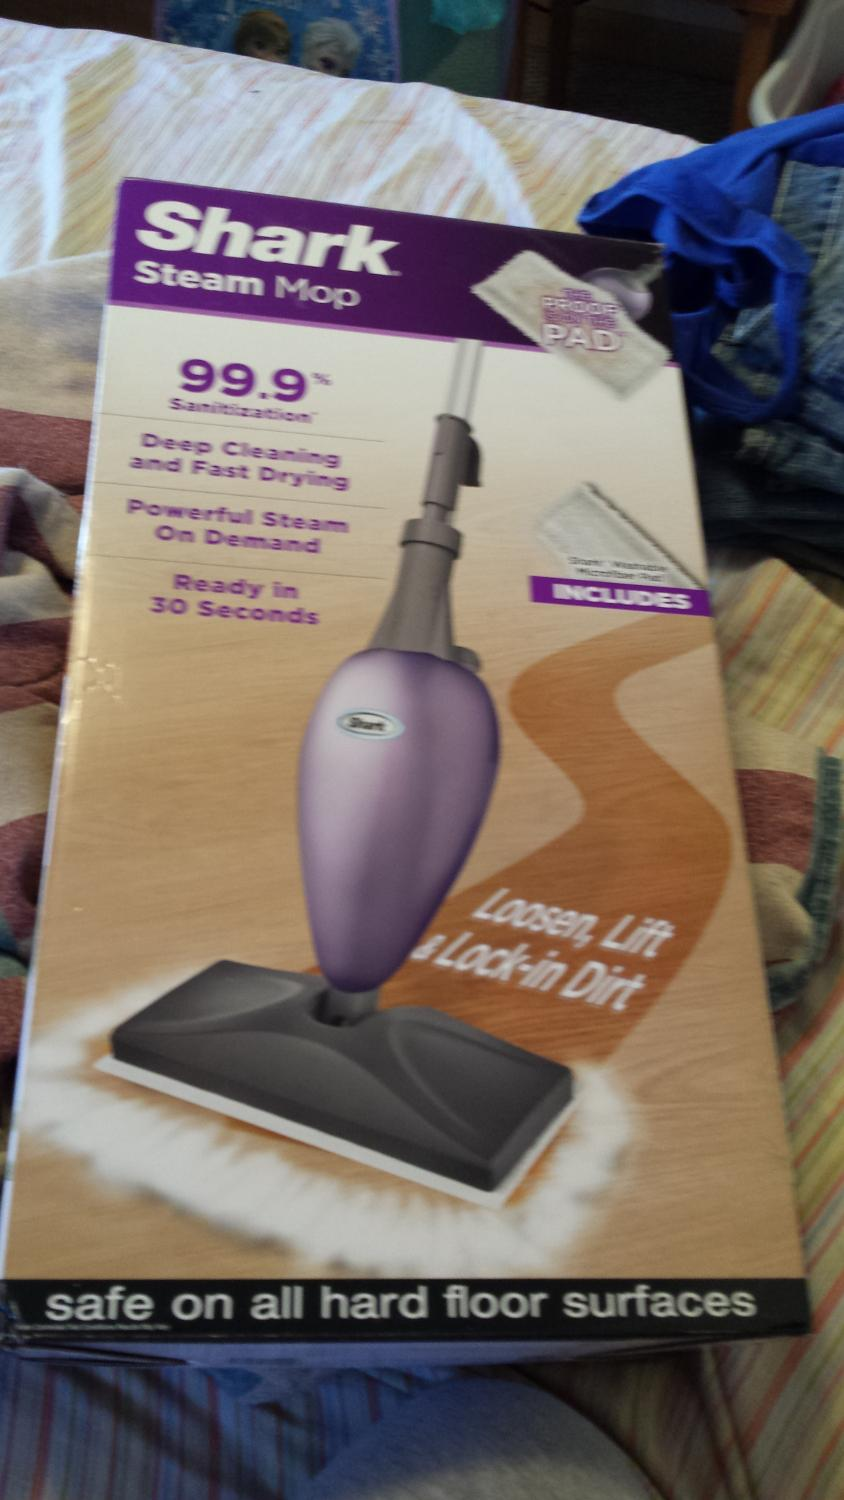 10 in 1 steam mop instructions